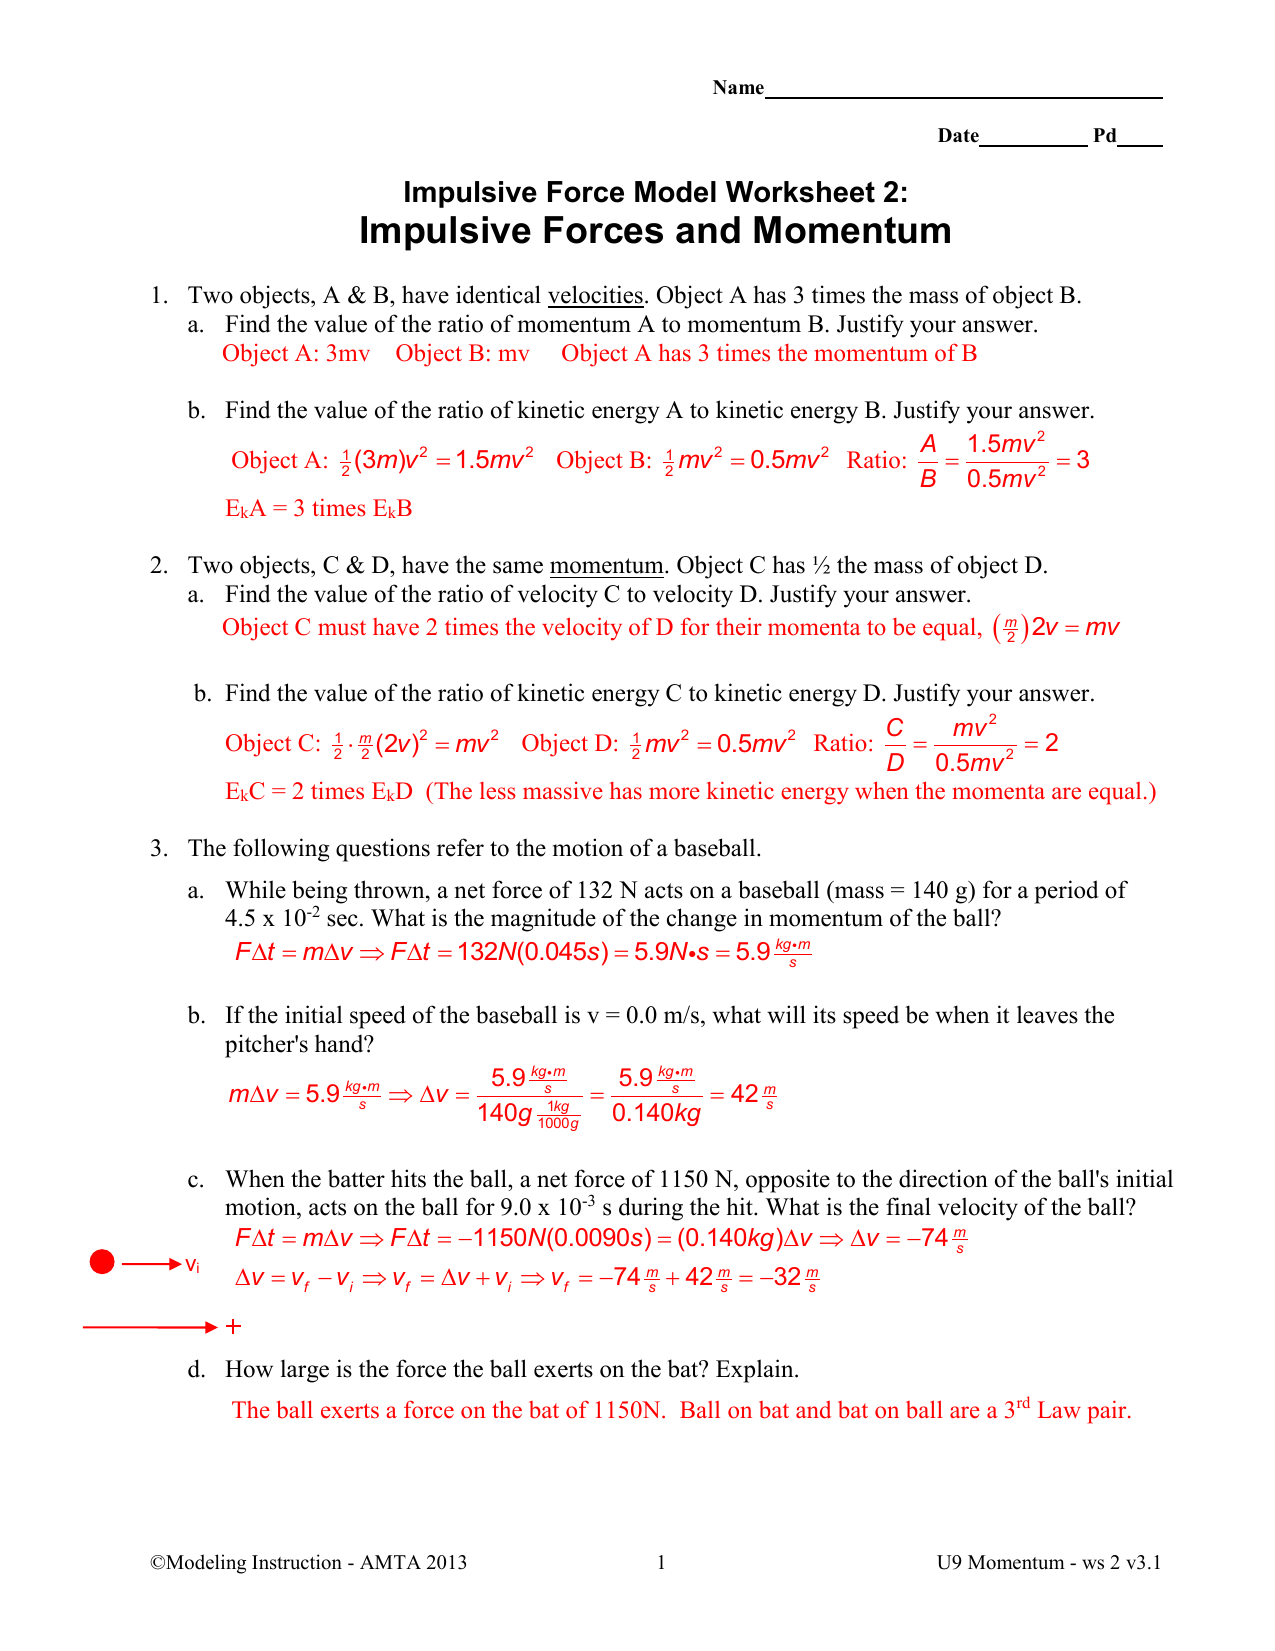 Impulsive Force Model Worksheet 3 Conservation Of Momentum